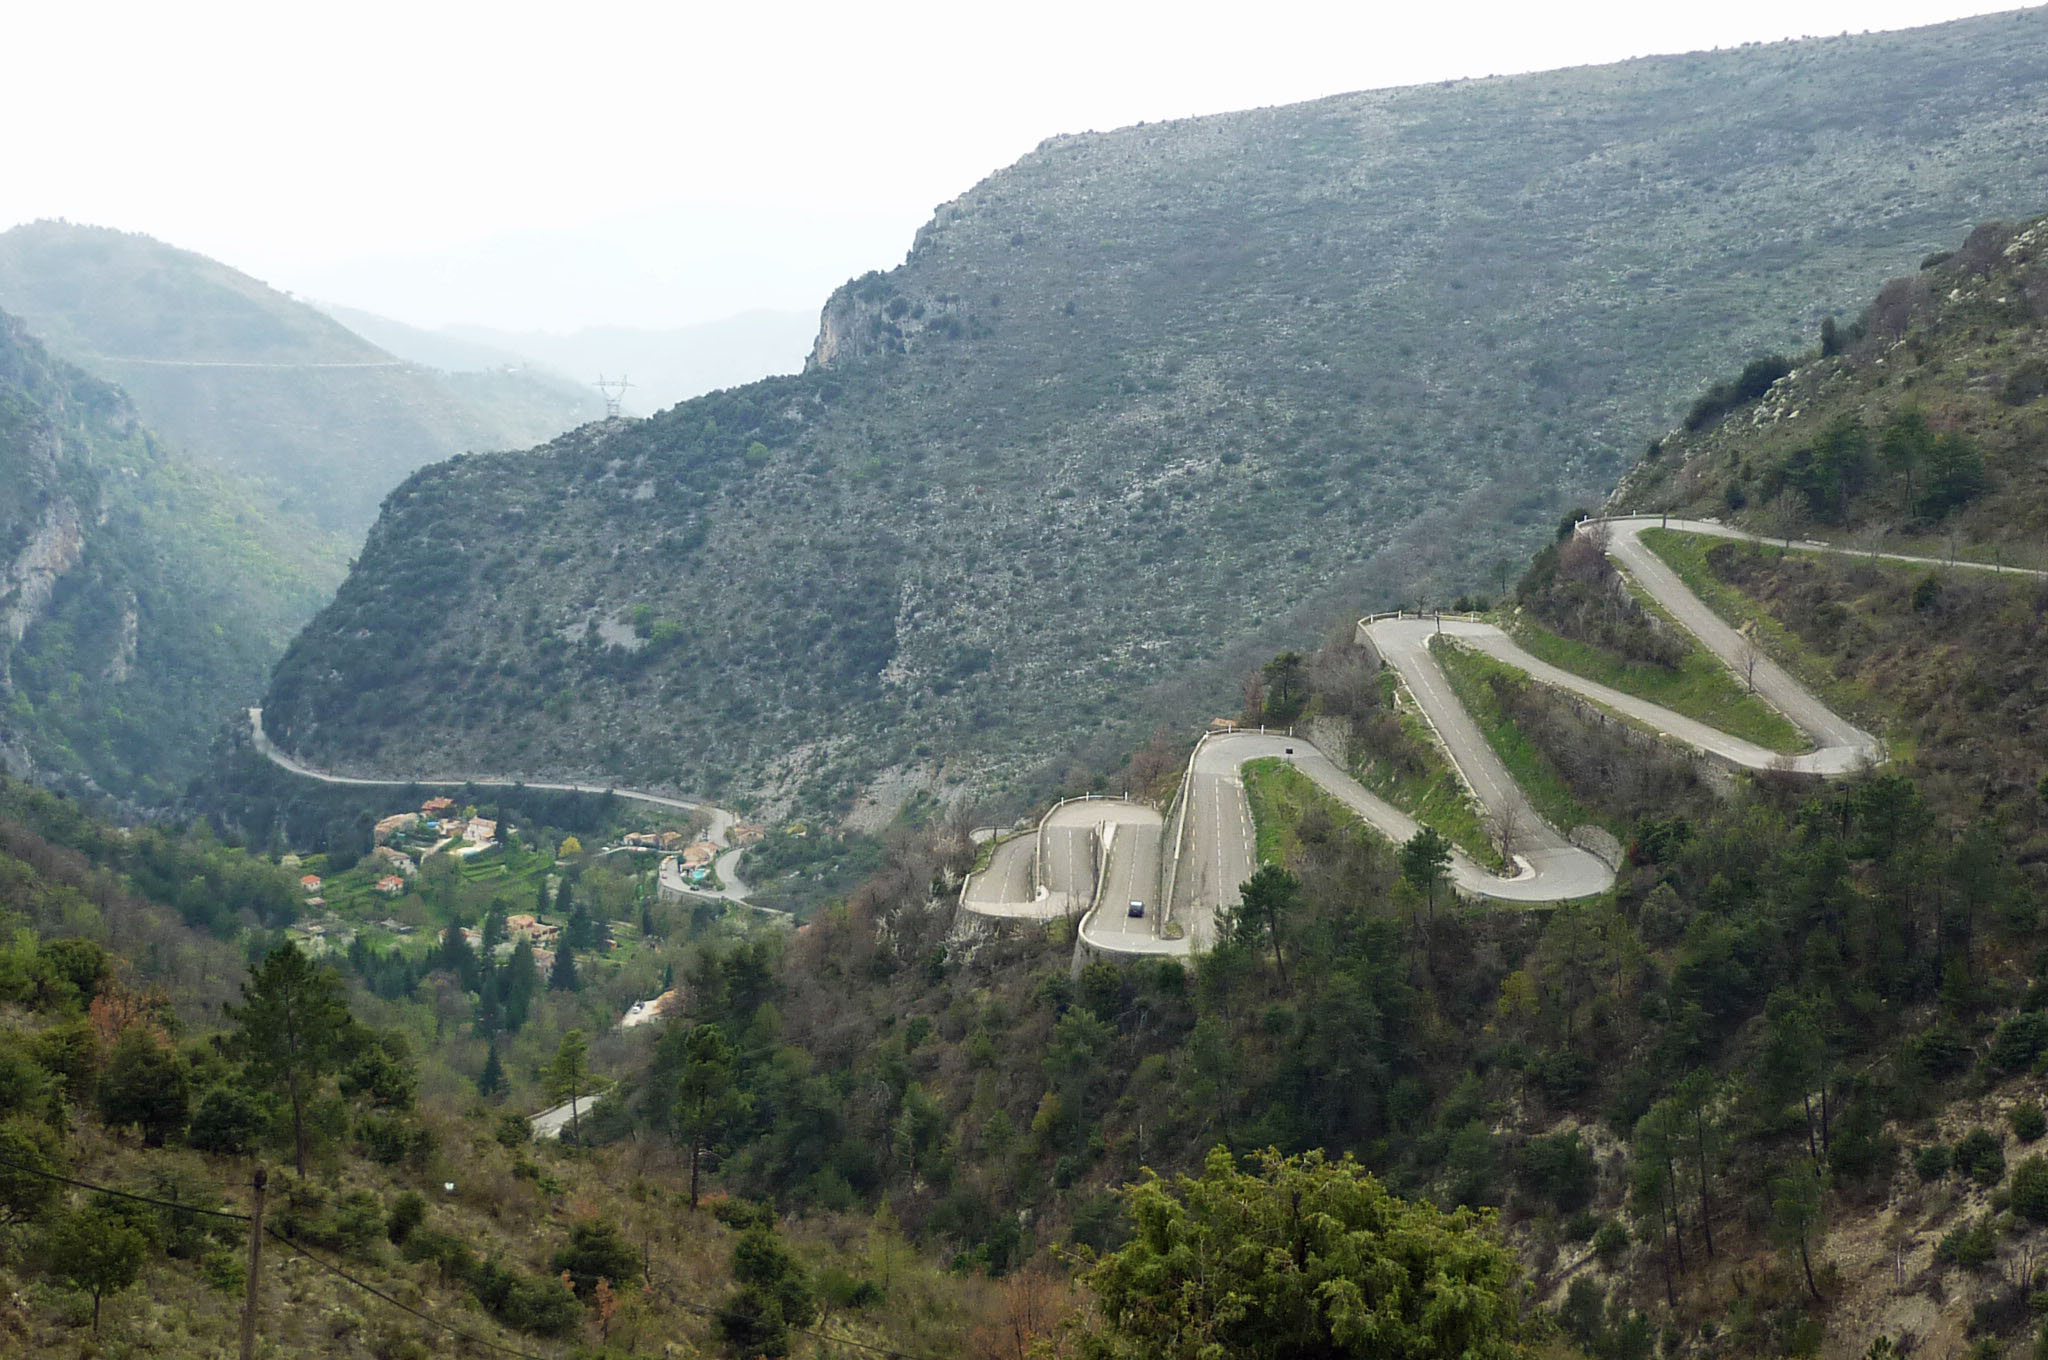 The Col de Braus mountain pass will be contested in 2019 as the rally's Power Stage.